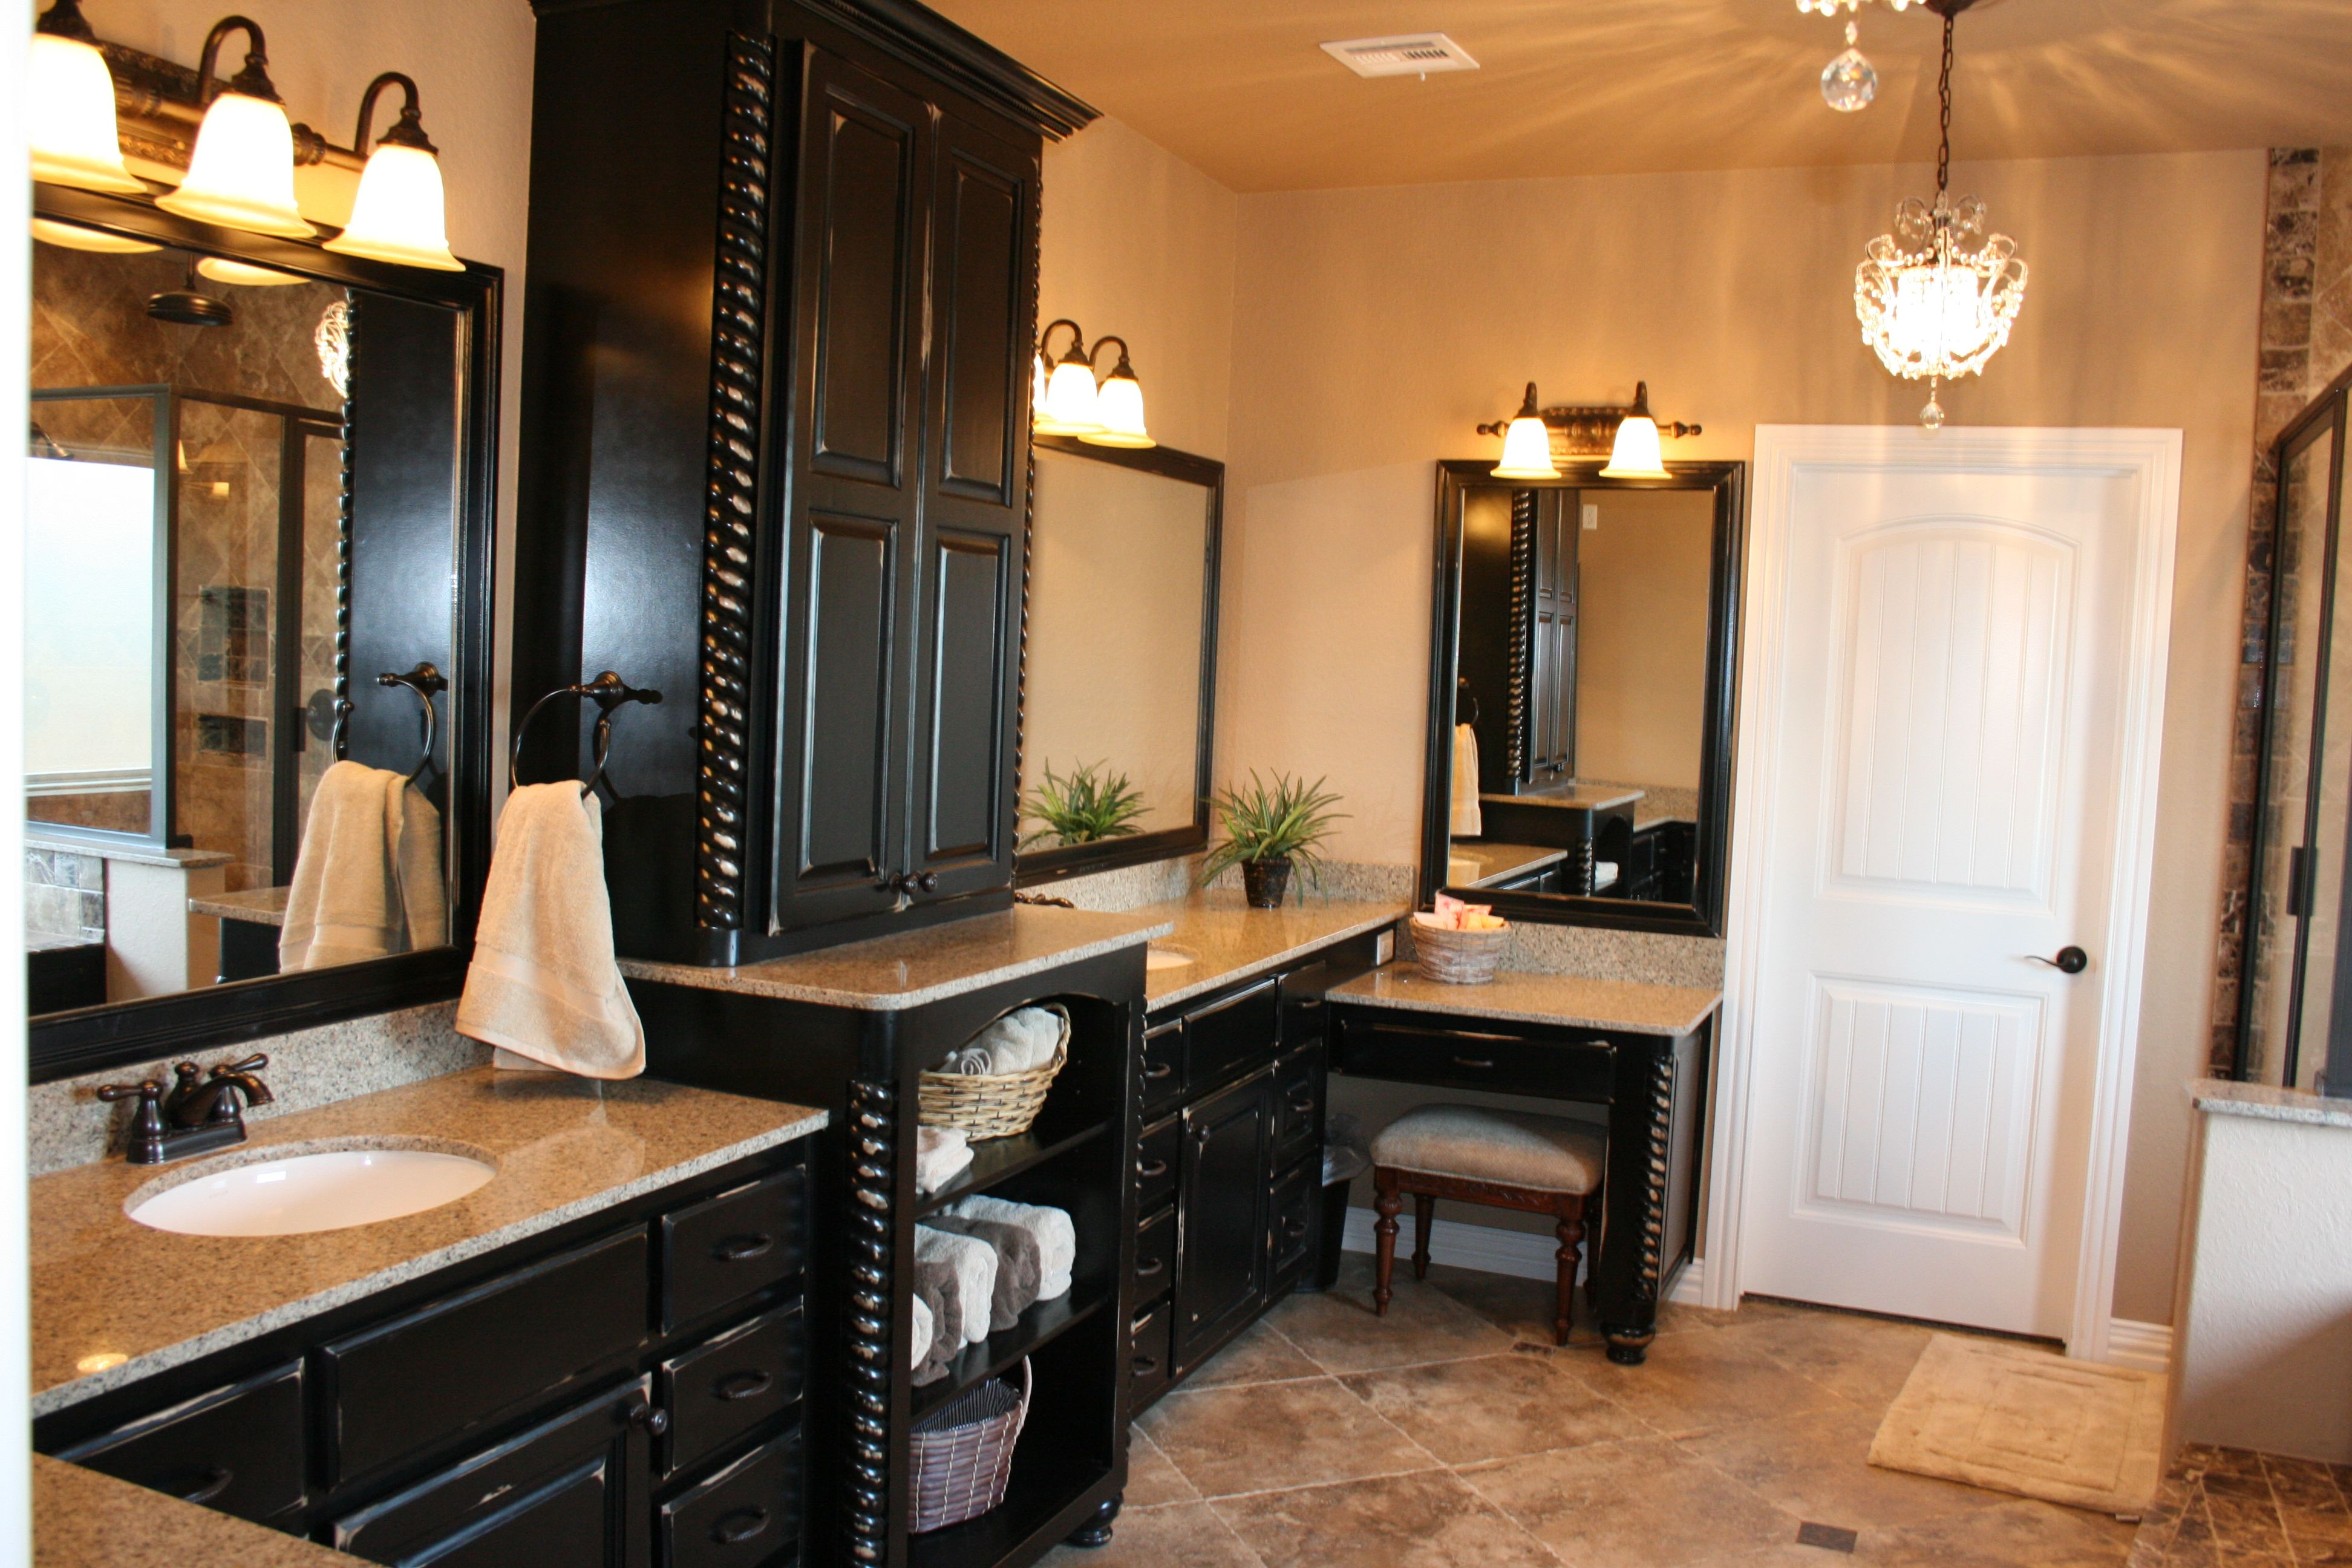 Bathroom Vanity For Interior Wooden Furniture Drawers Also Counter Top And  Double Vanity Feat Mirror With Lamps On Wall Through Black Bathroom Vanities